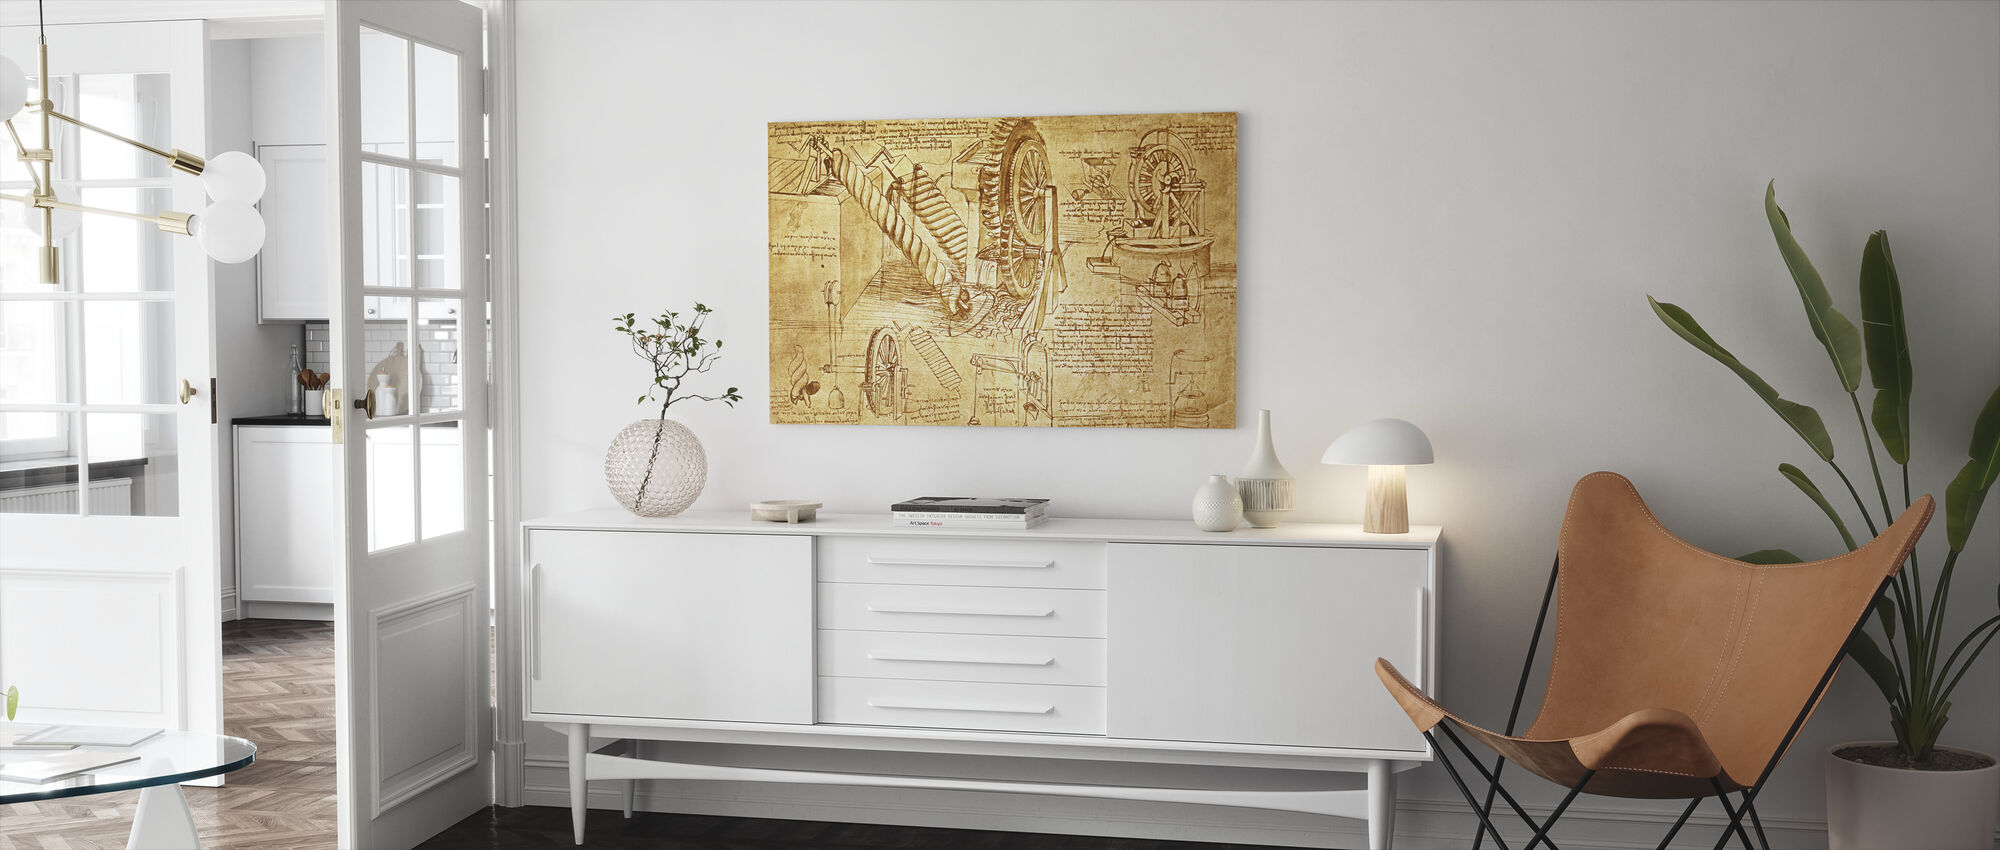 Leonardo da Vinci - Atlanticus - Canvas print - Living Room